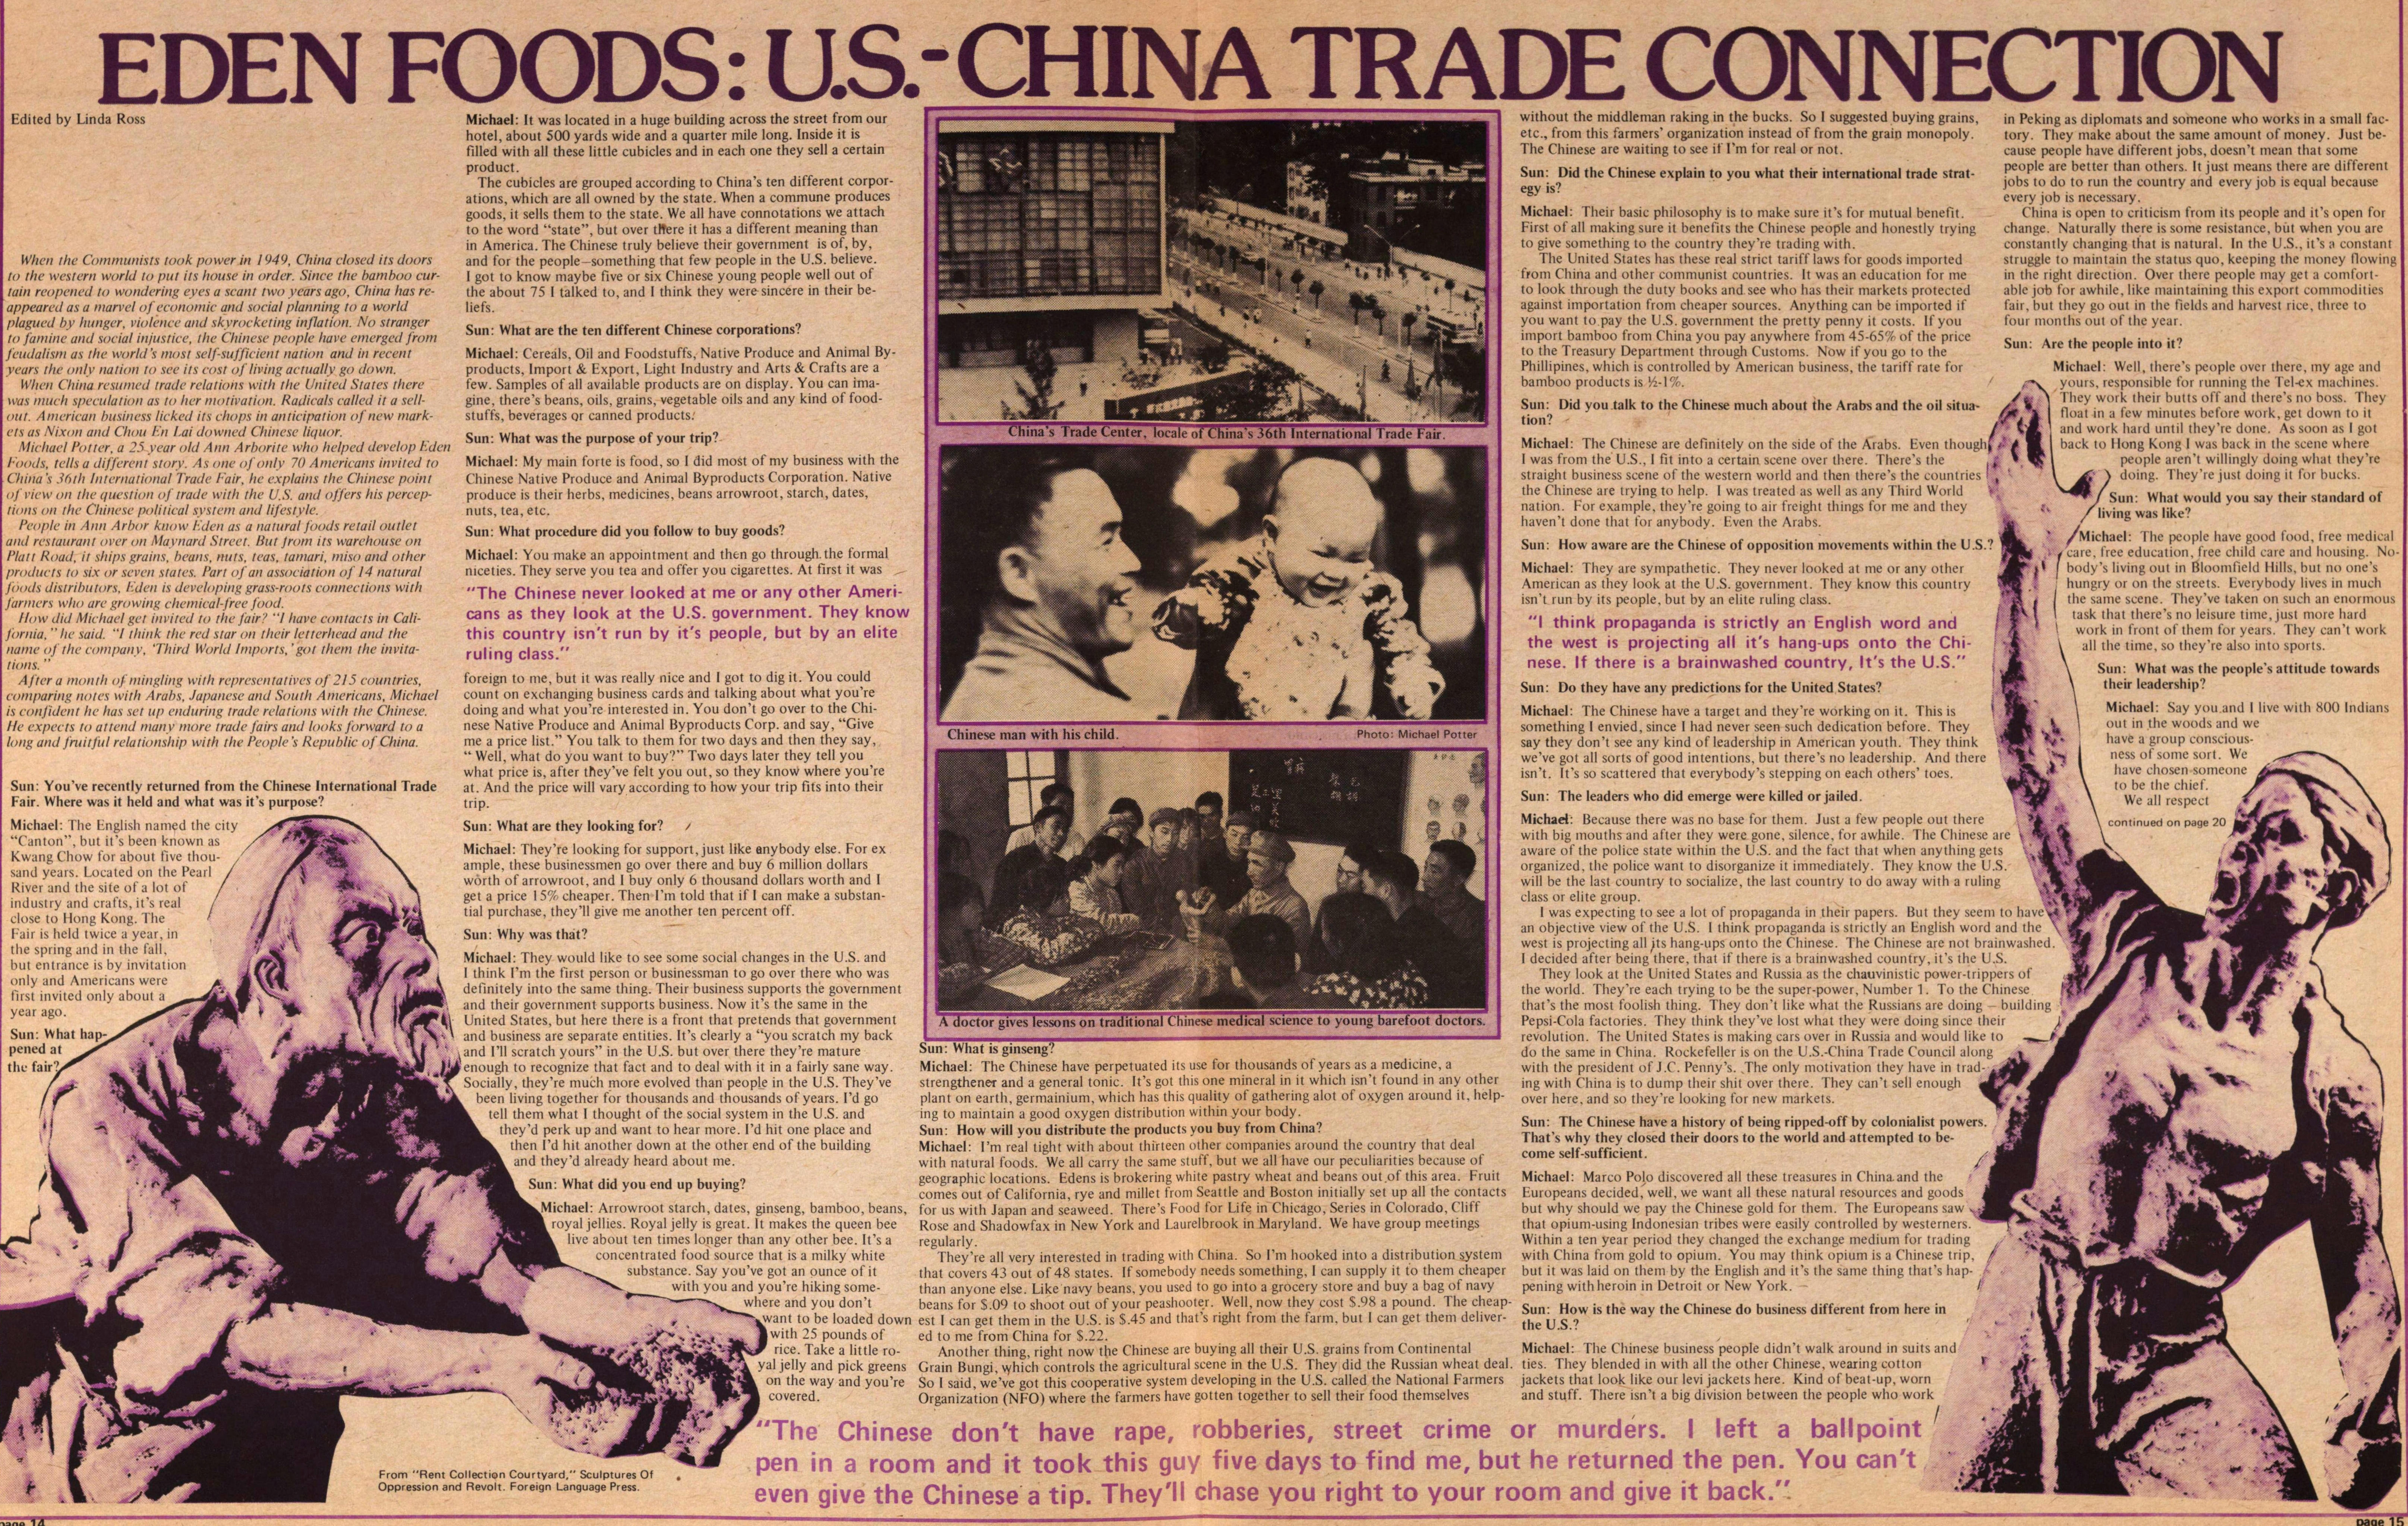 Eden Foods: Us.-china Trade Connection image